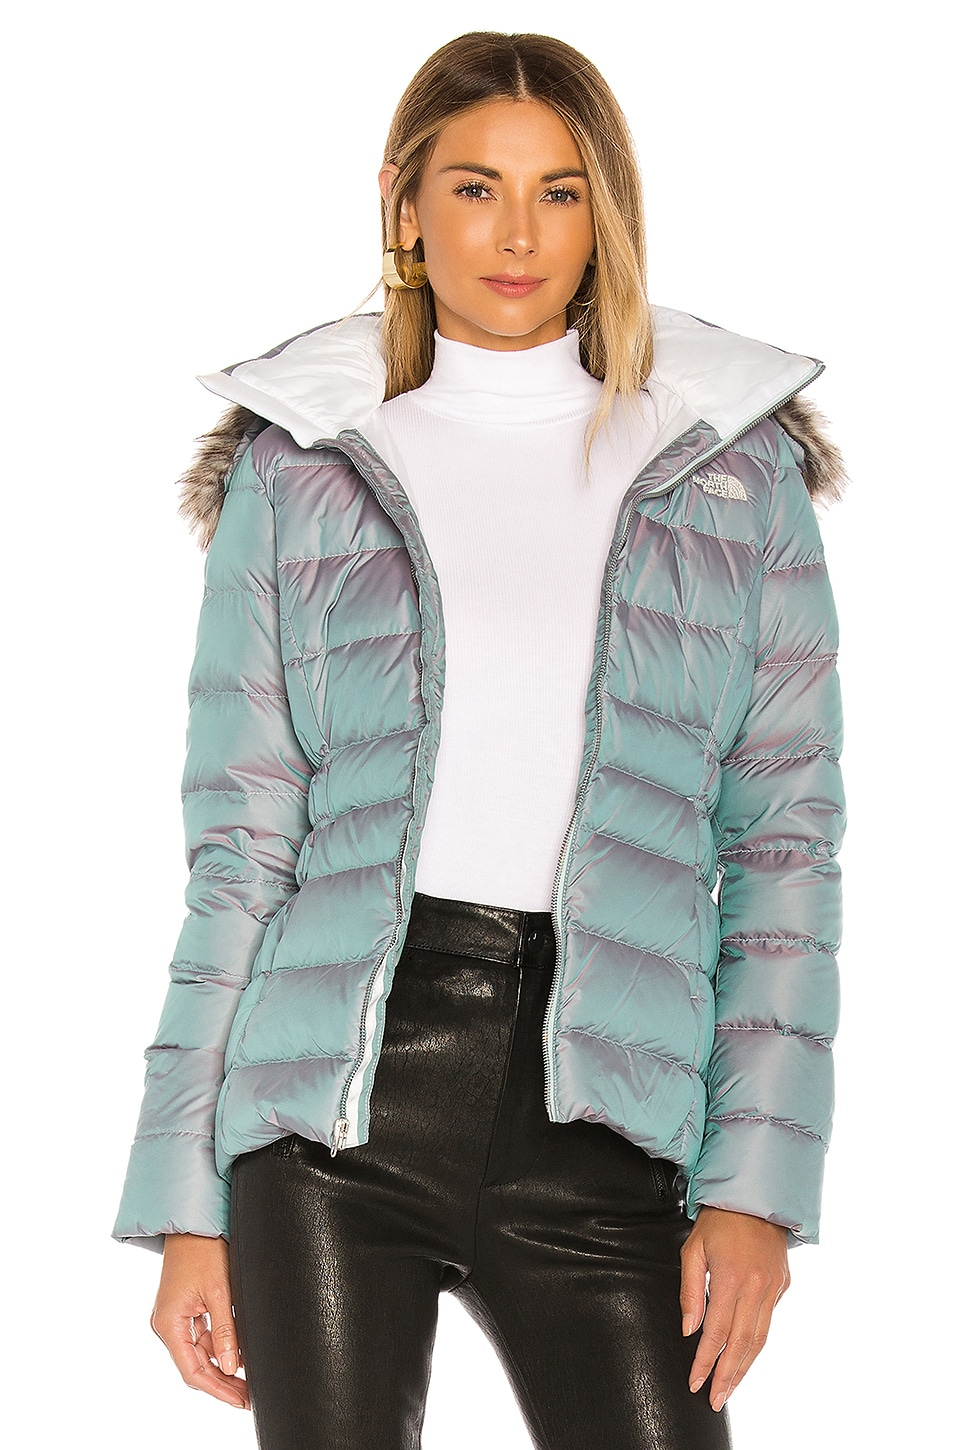 The North Face Gotham Jacket II With Faux Fur Trim in Blue Frost Iridescent